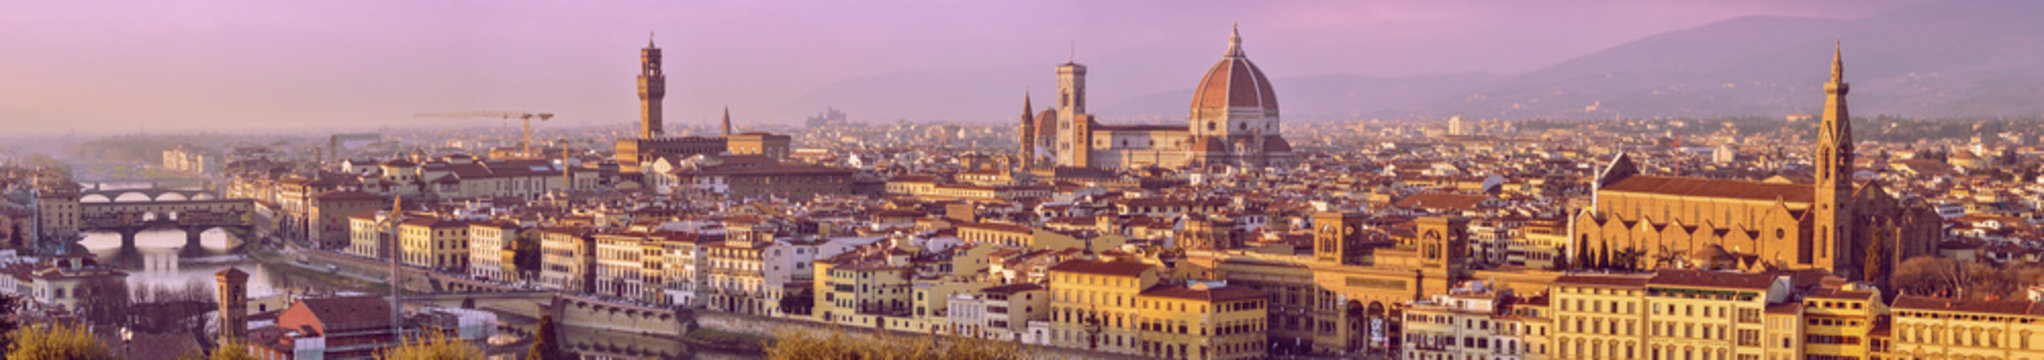 Panoramic view of Florence city crossing the river